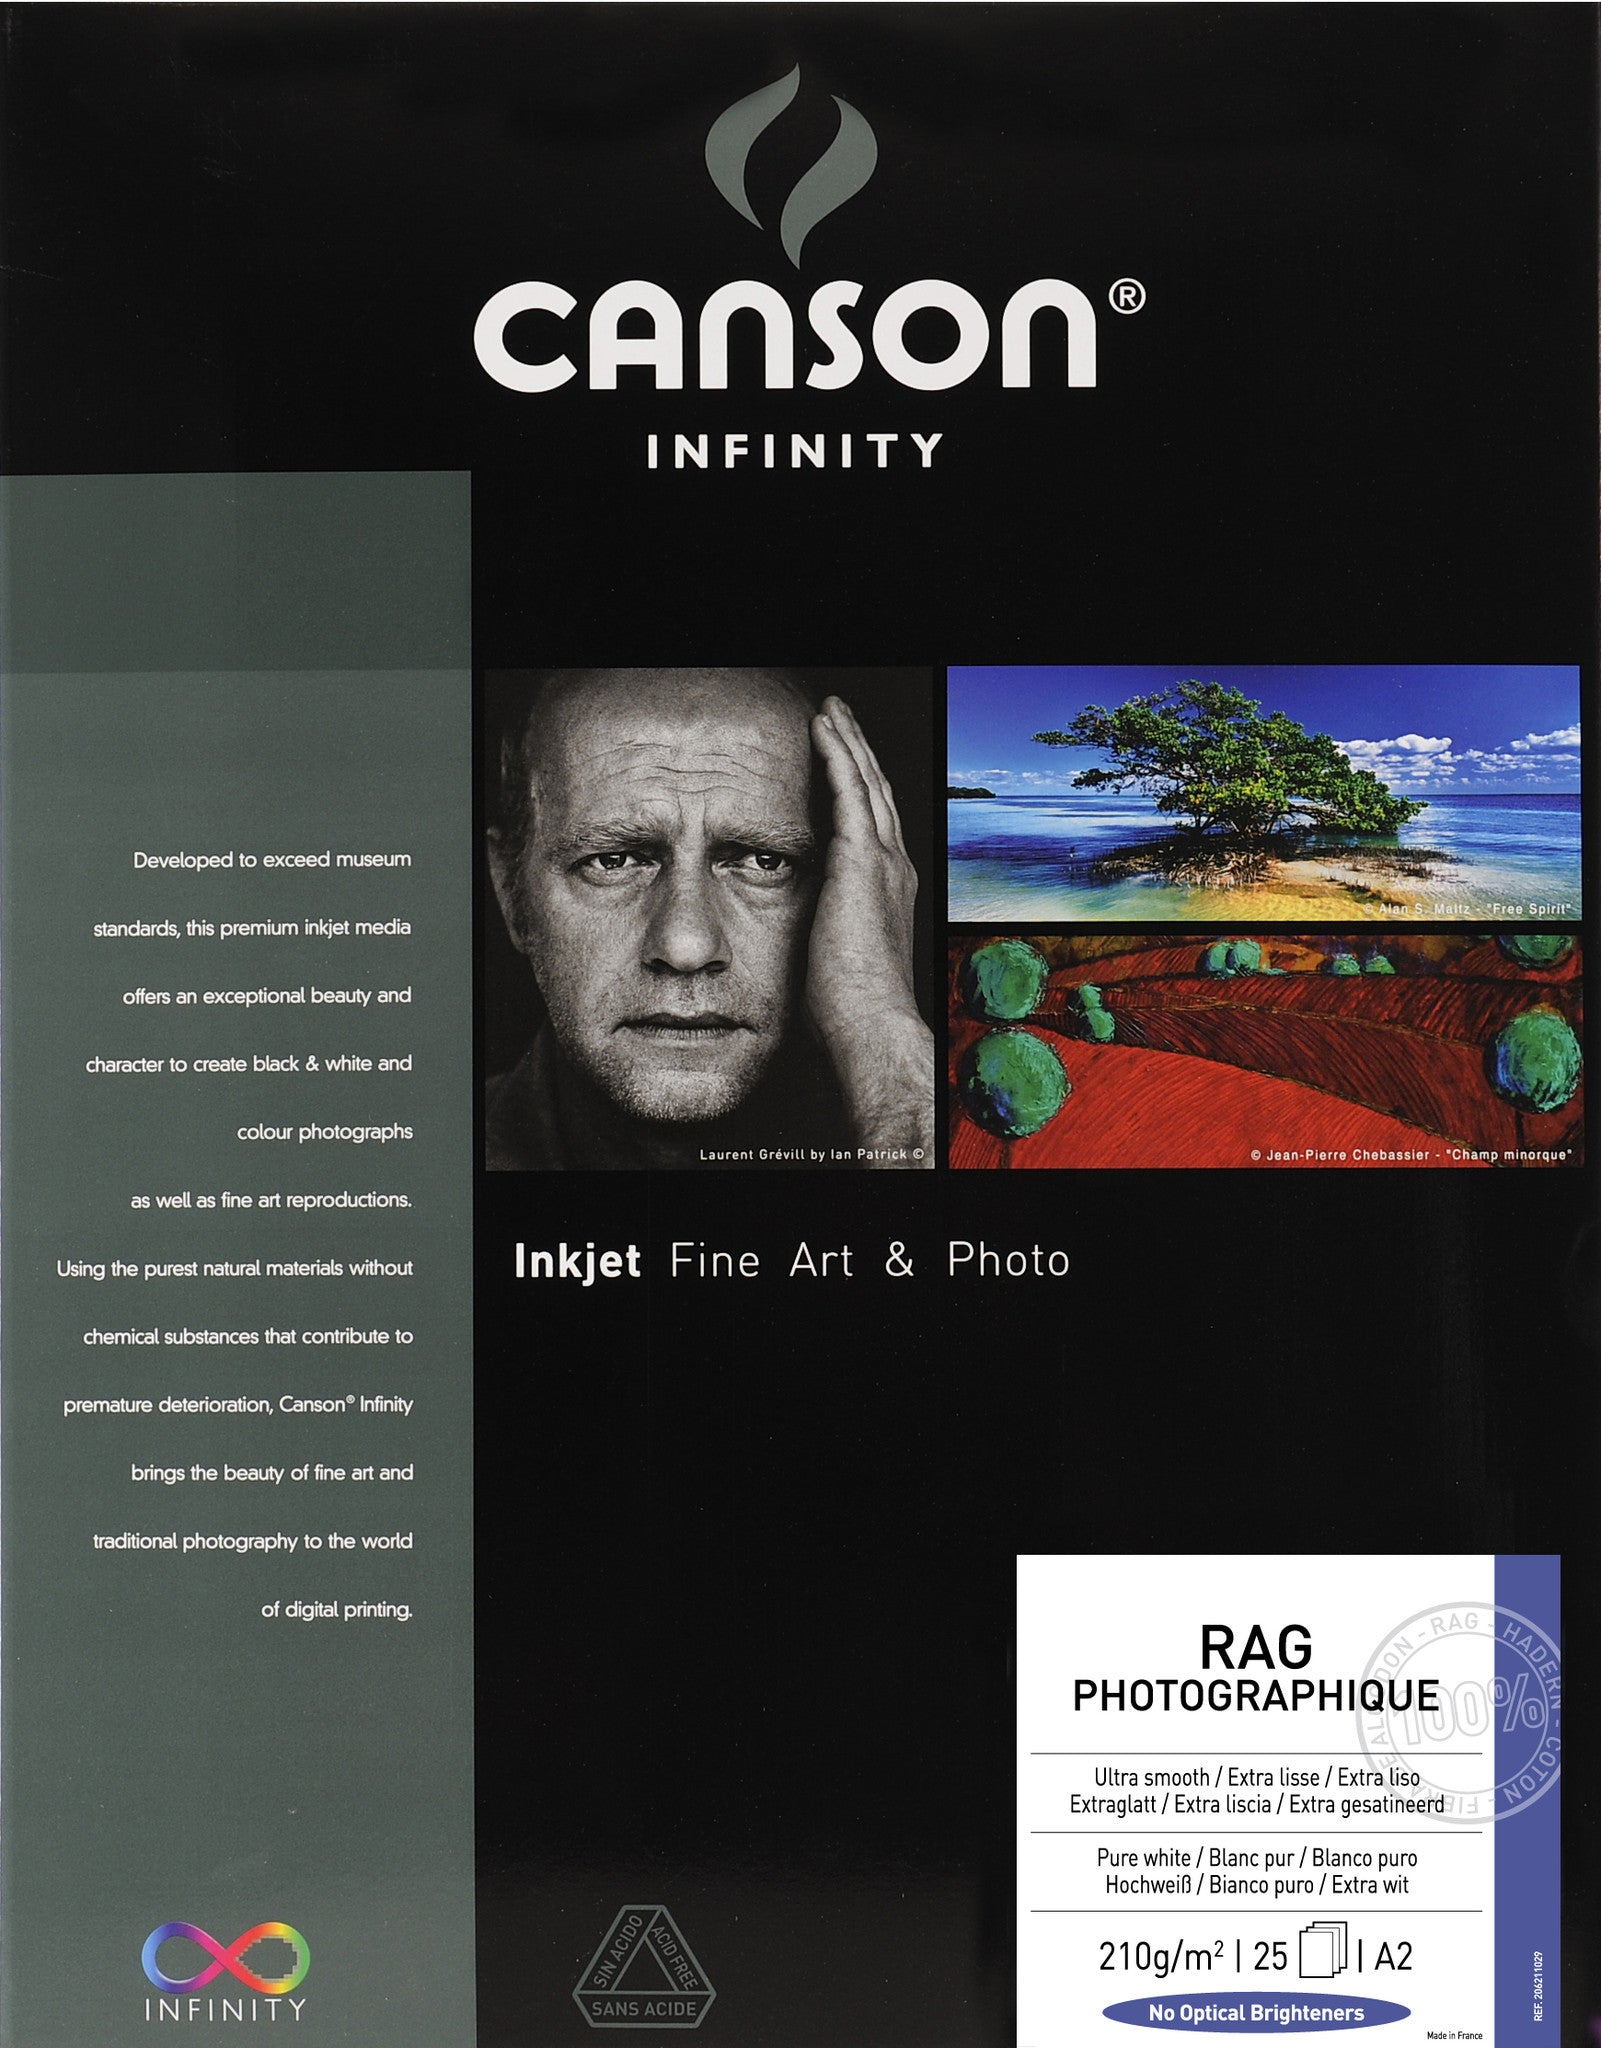 Canson Infinity Rag Photographique - 210gsm - A2 (25 sheets)